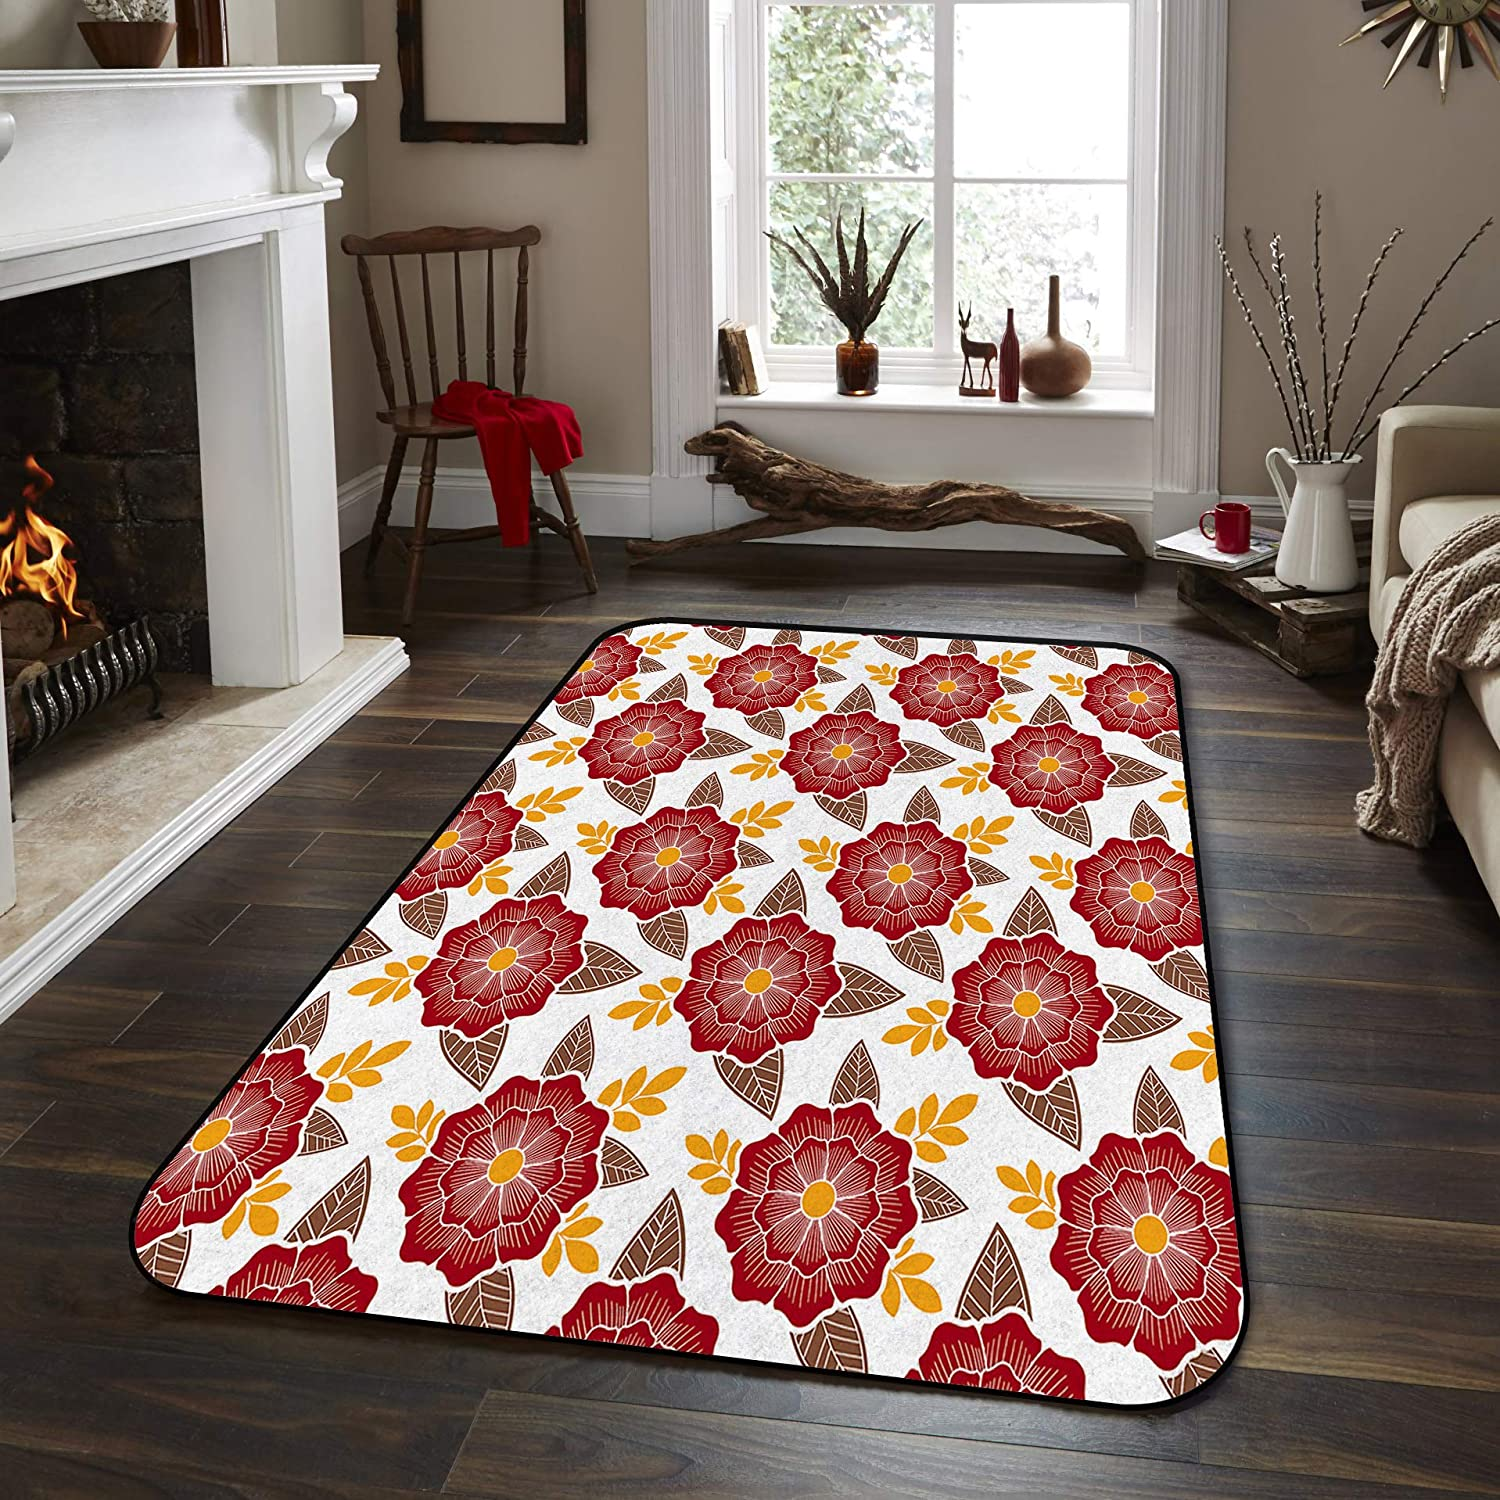 Soft Area Rugs for Bedroom outlet Flower Red Las Vegas Mall Patte Traditional Japanese